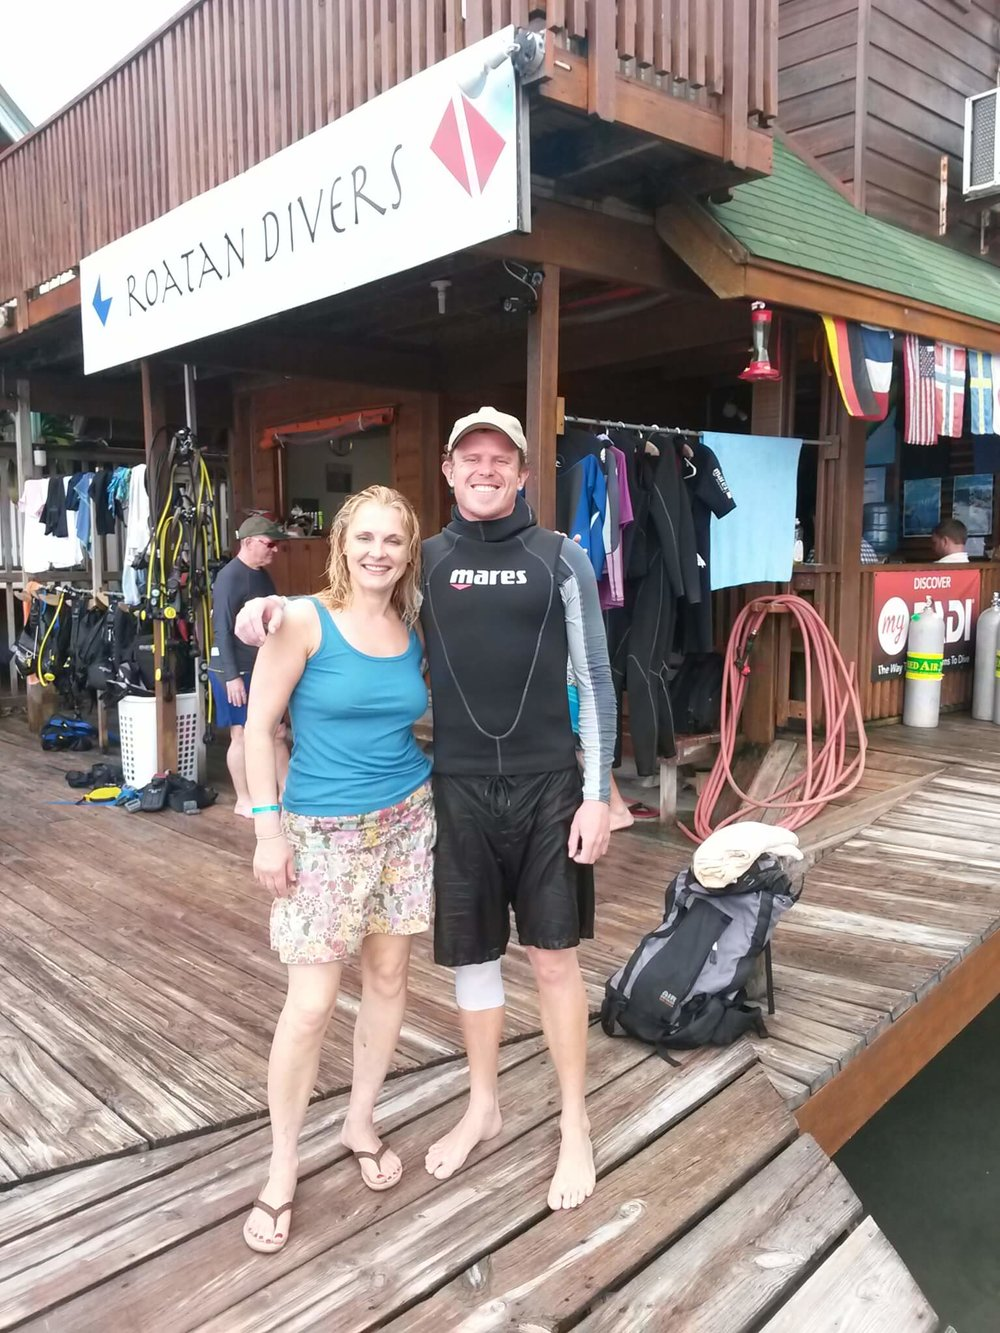 PADI Open Water Diver referral Roatan Divers